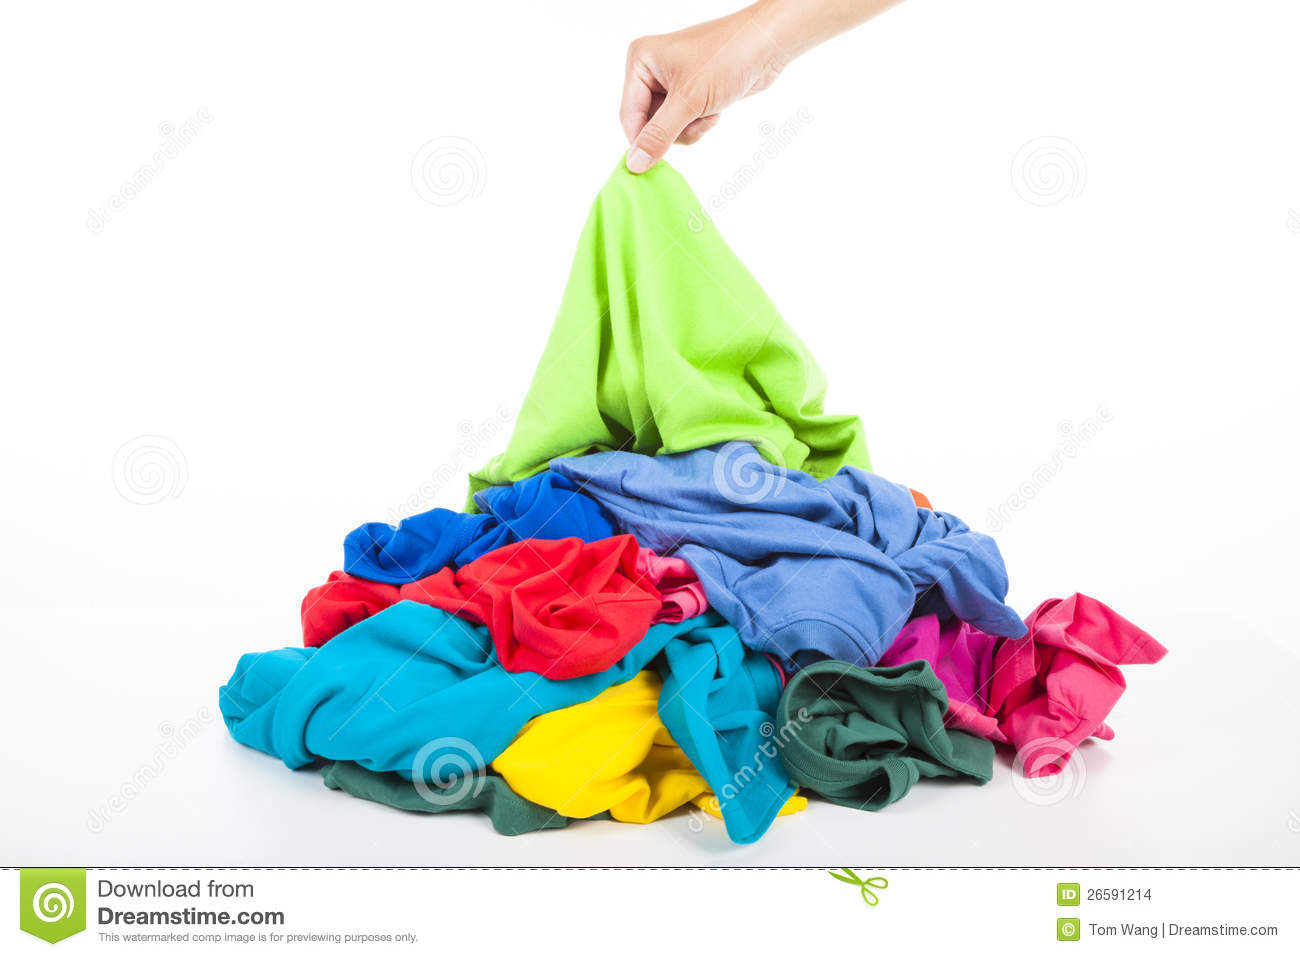 Hand Pick Up Shirt In Pile Of Clothes Stock Images   Image  26591214